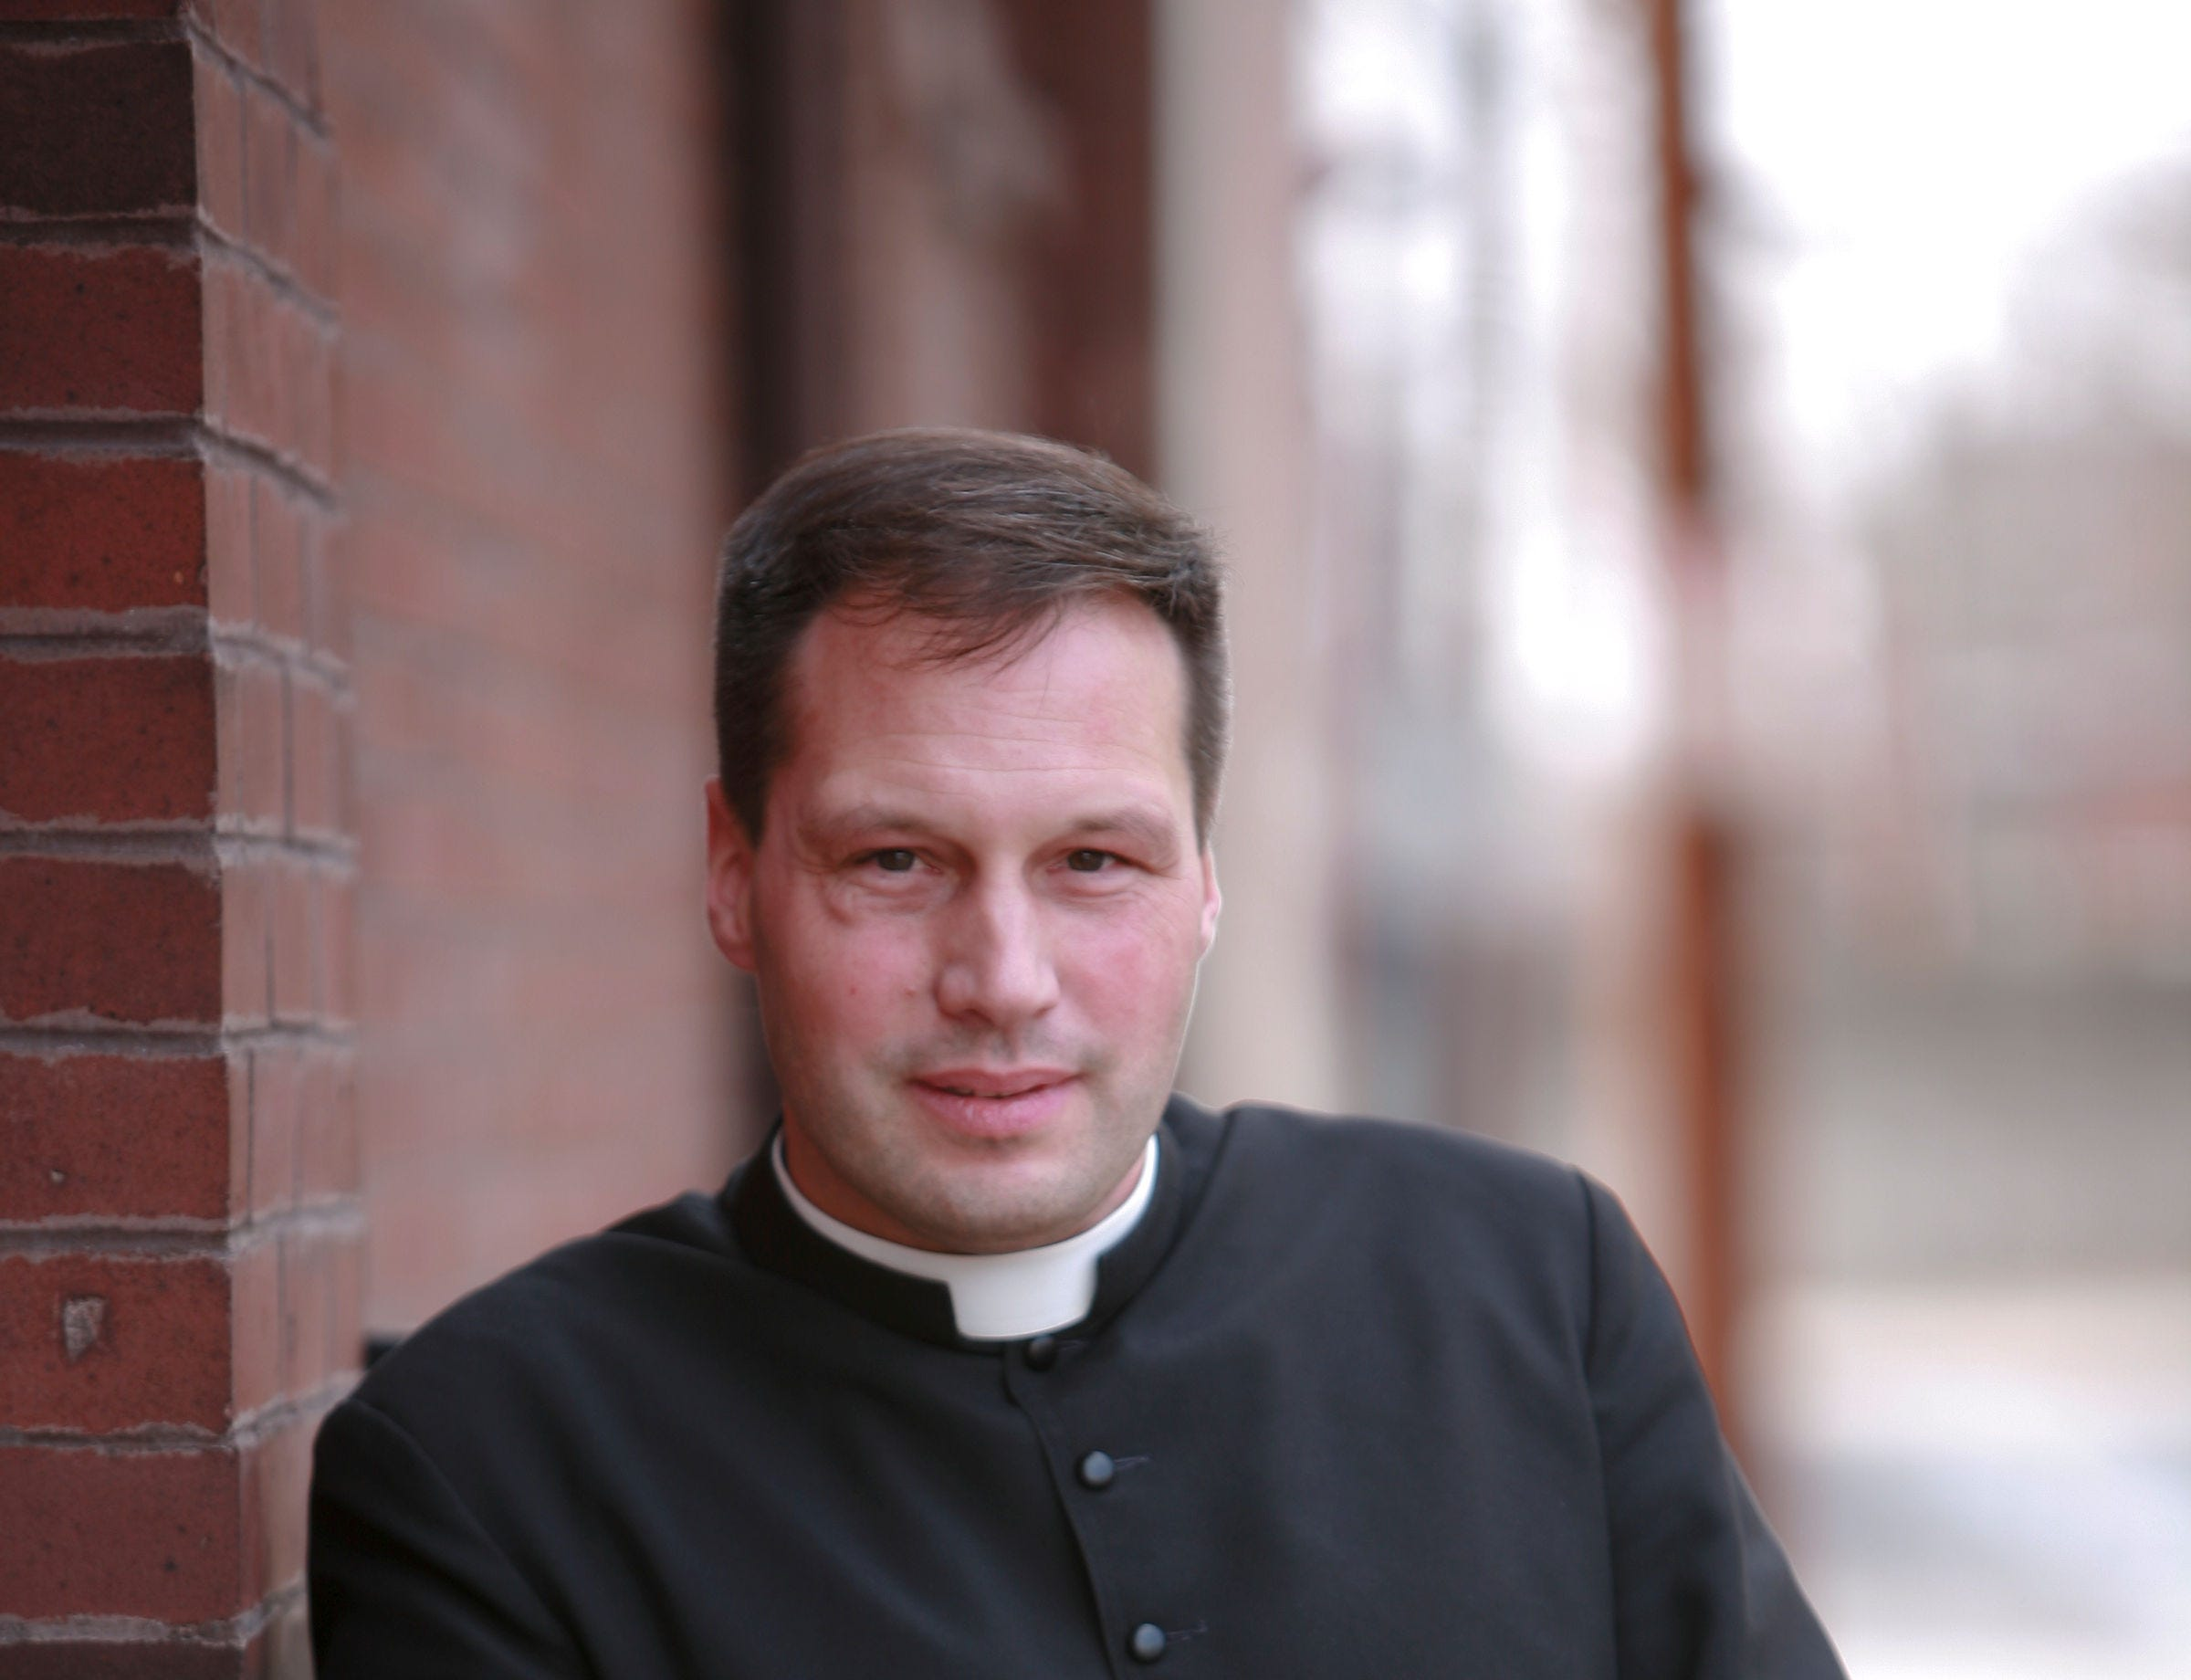 Virgil Bradley Tetherow, also known as Father Gabriel, in a photograph taken in 2009.